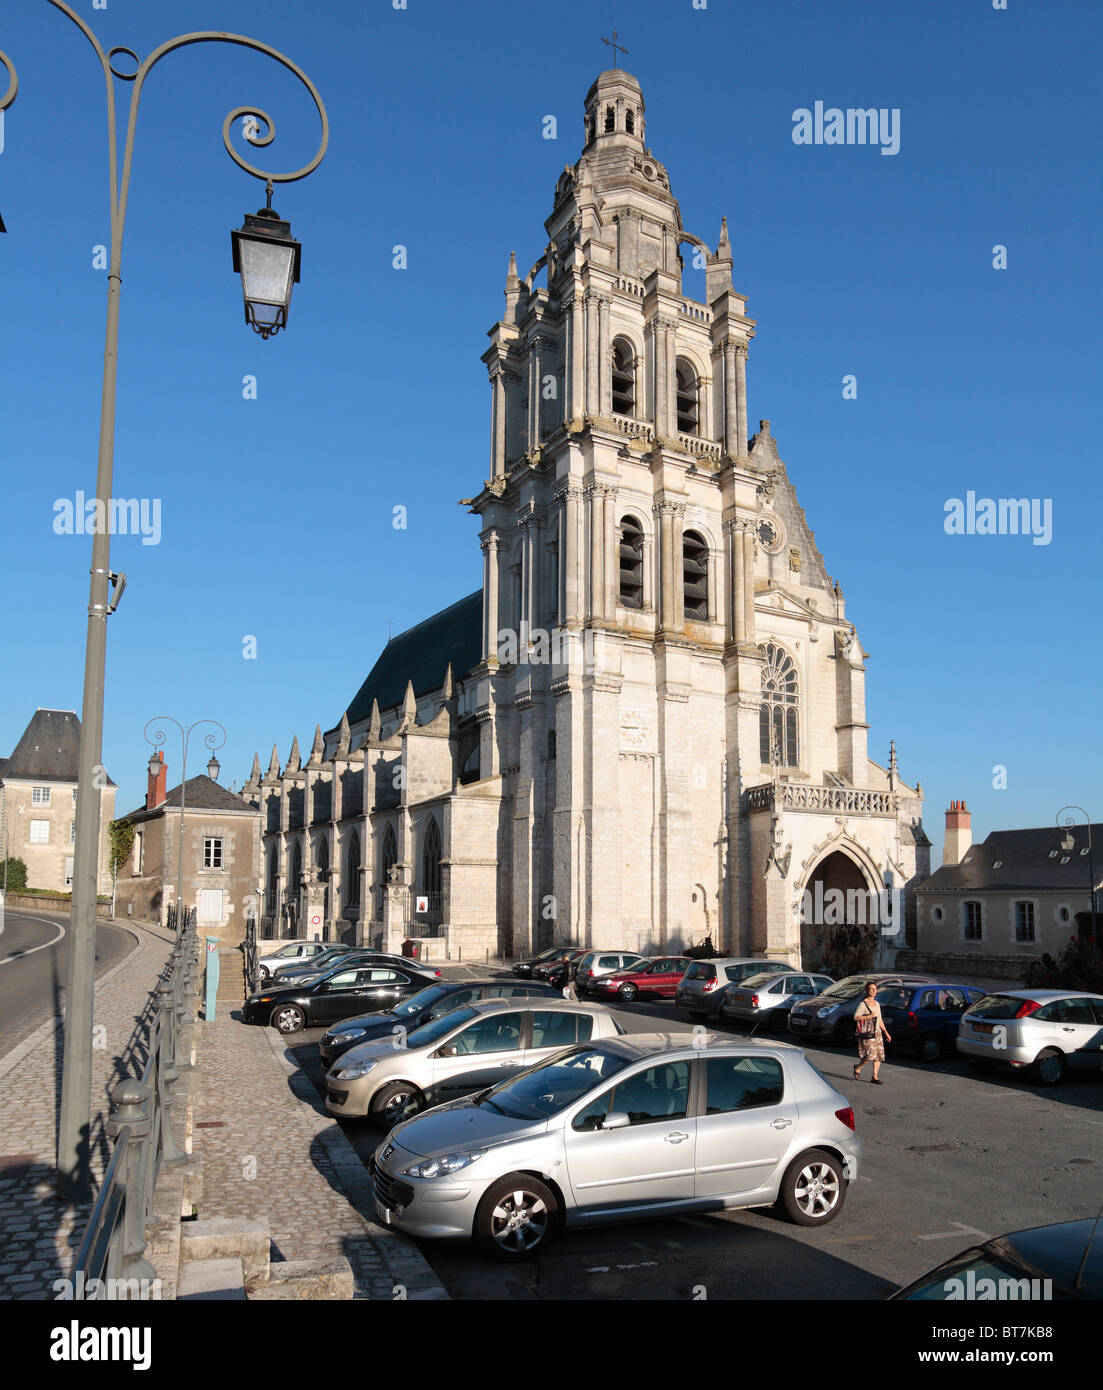 Cathedral of Saint Louis in Blois, France. - Stock Image